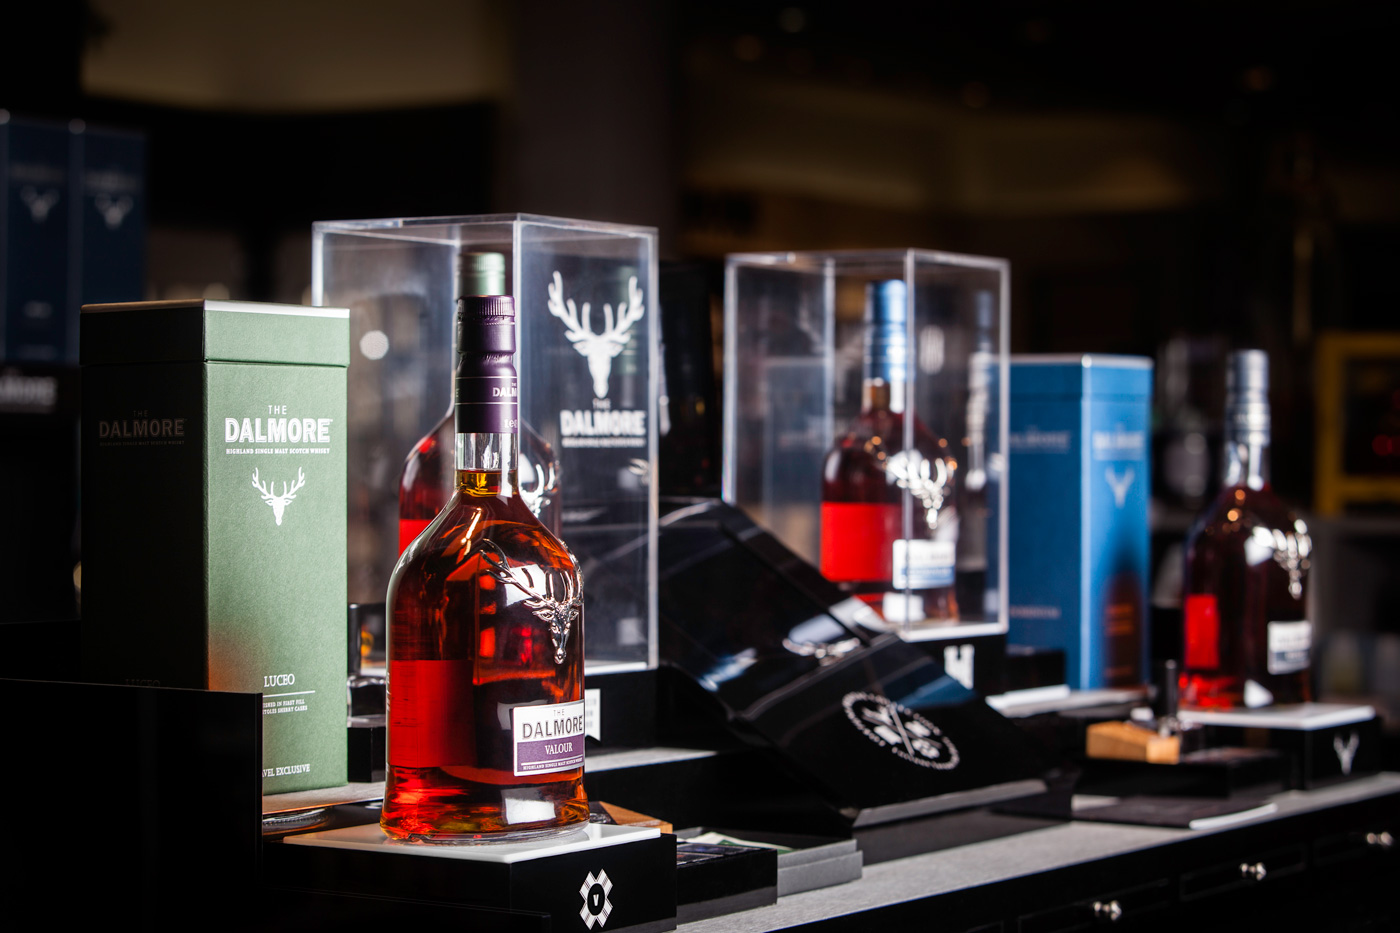 The Dalmore Training Kit